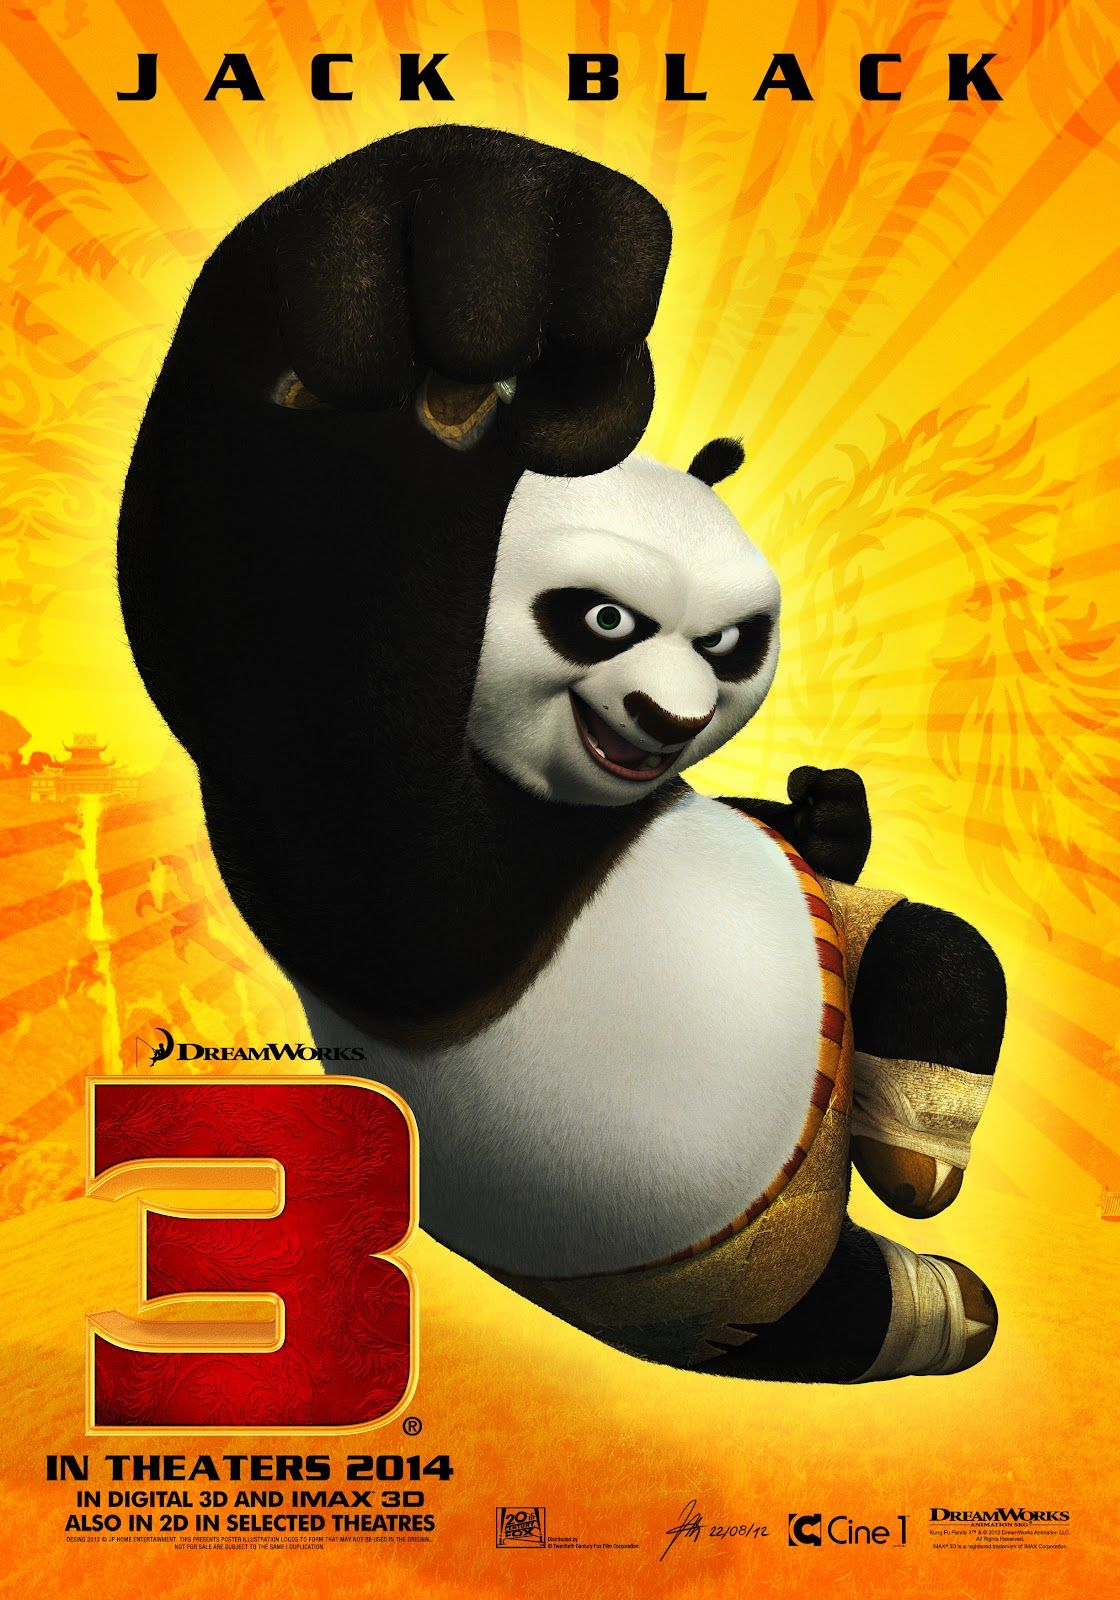 We Looooove The Kung Fu Panda Movies After Watching Frozen A